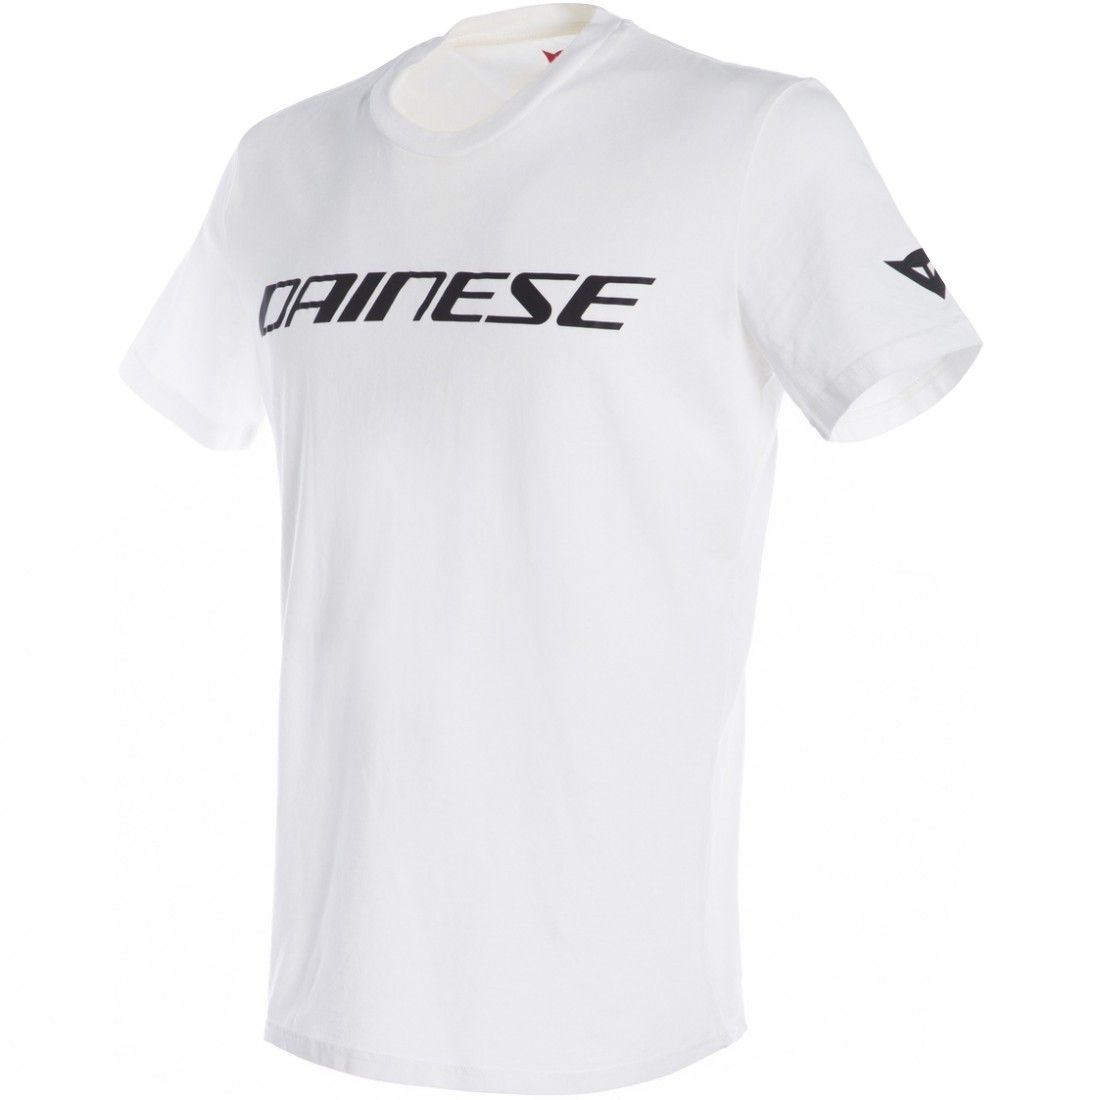 78dc1eee DAINESE Dainese White / Black Jersey · Motocard